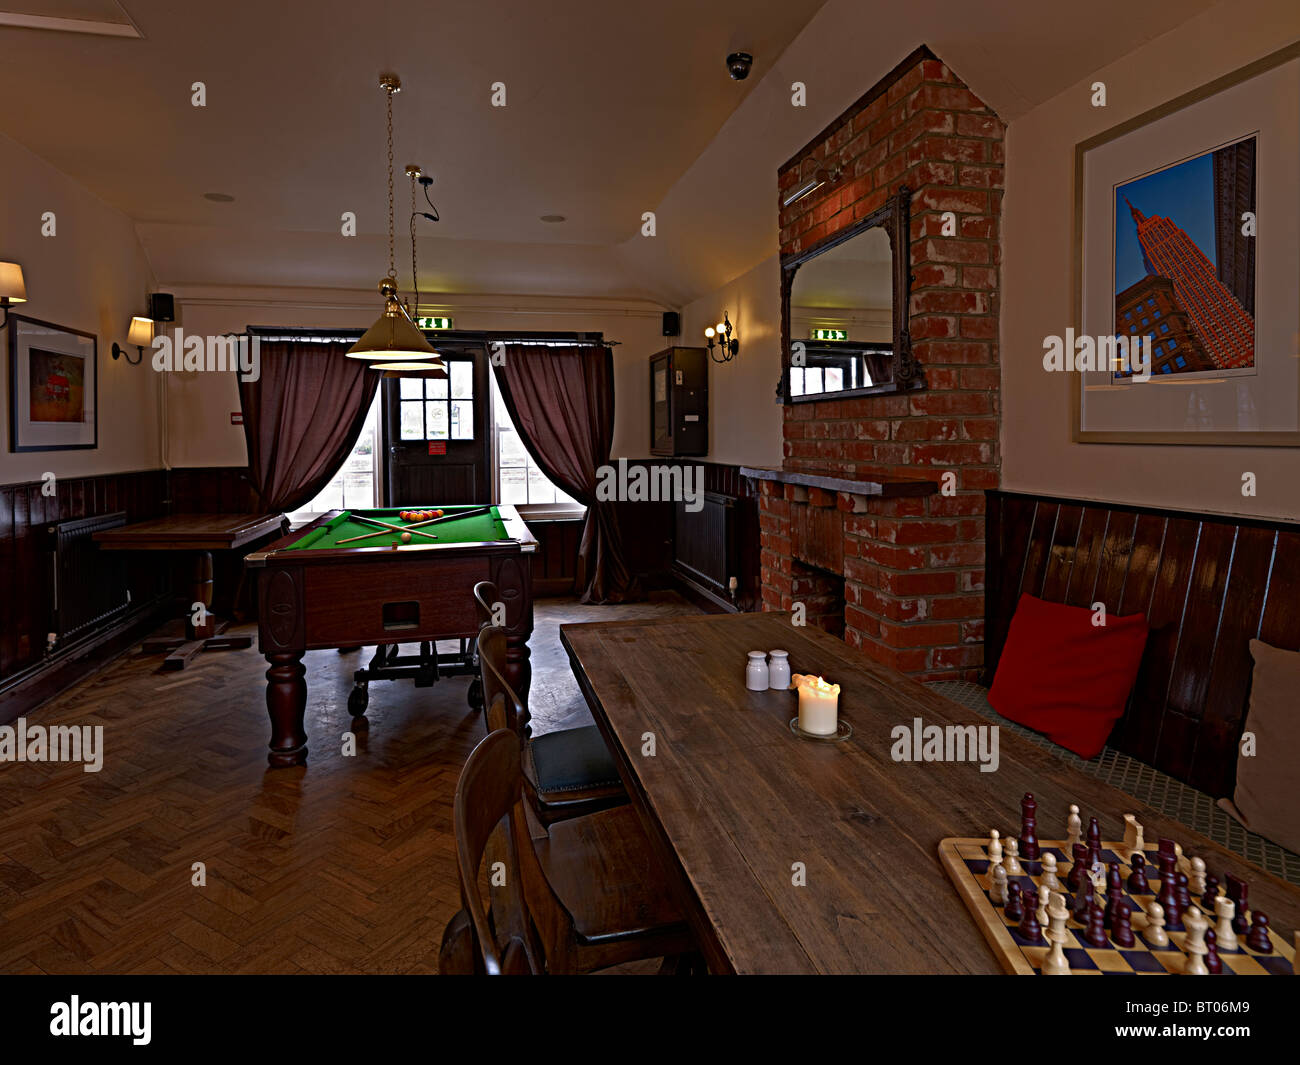 The pool table in the games room of an old english pub or public house in the UK - Stock Image